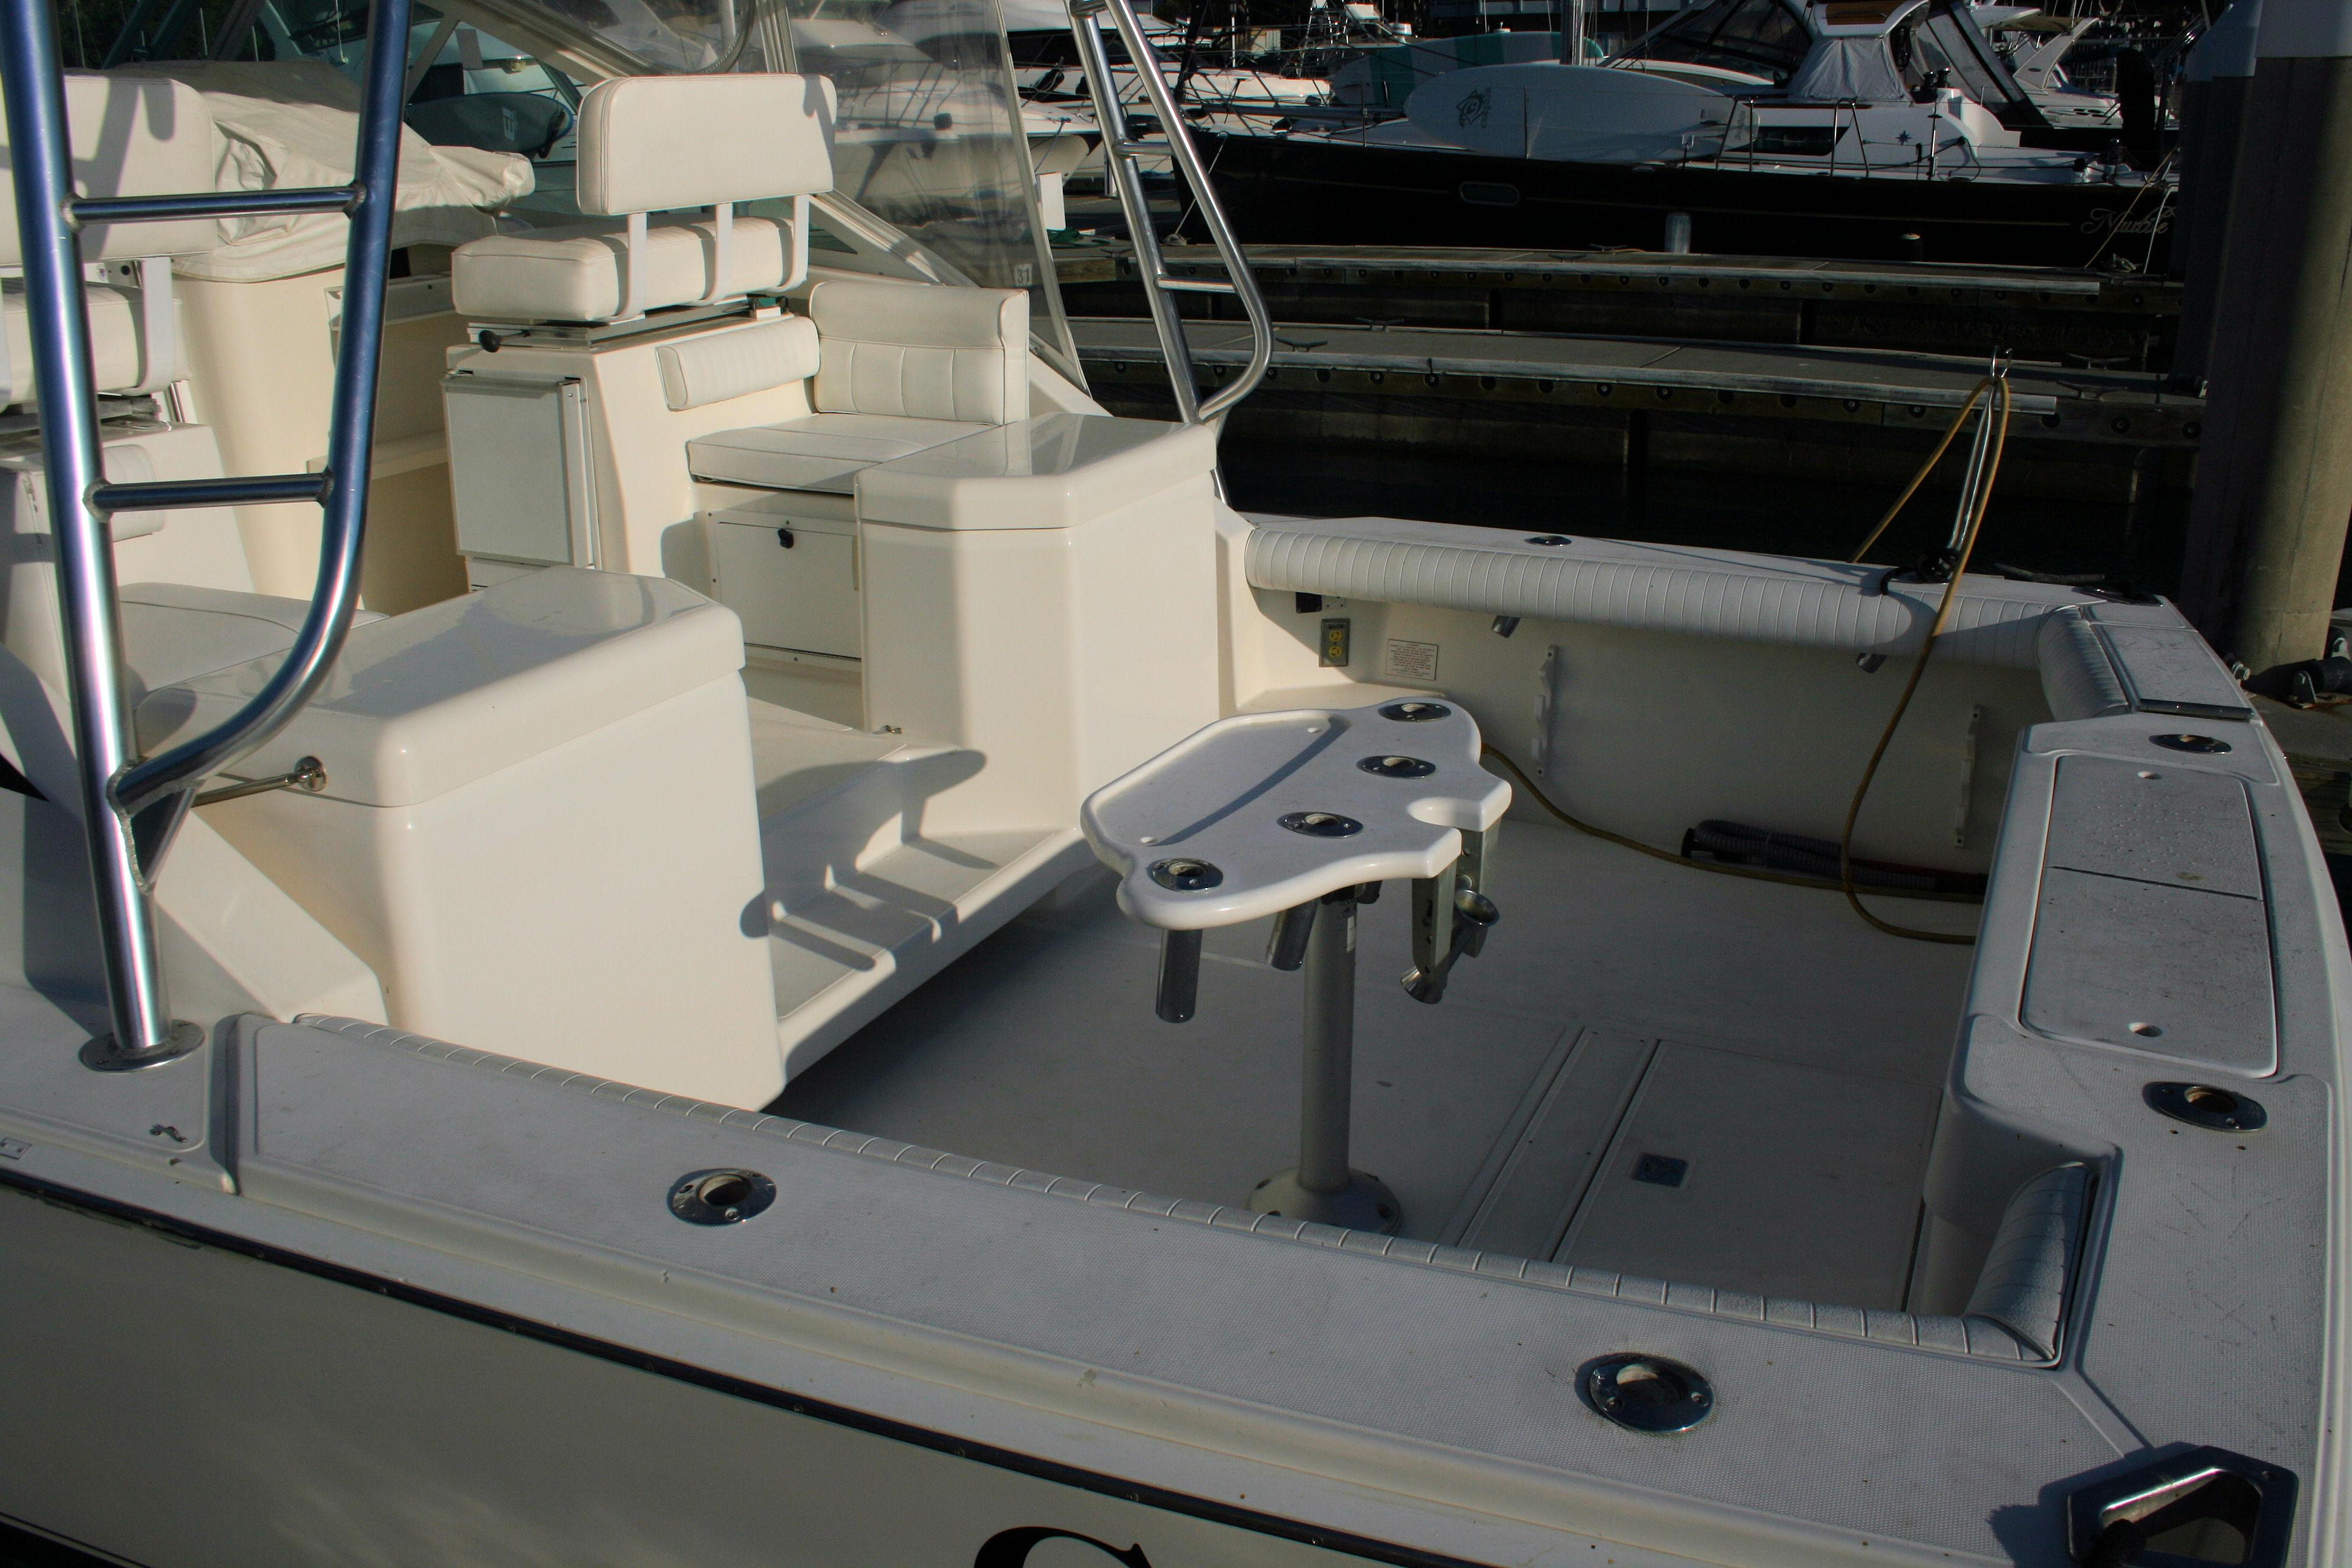 BAIT TANK AND REFRIGERATED BOX